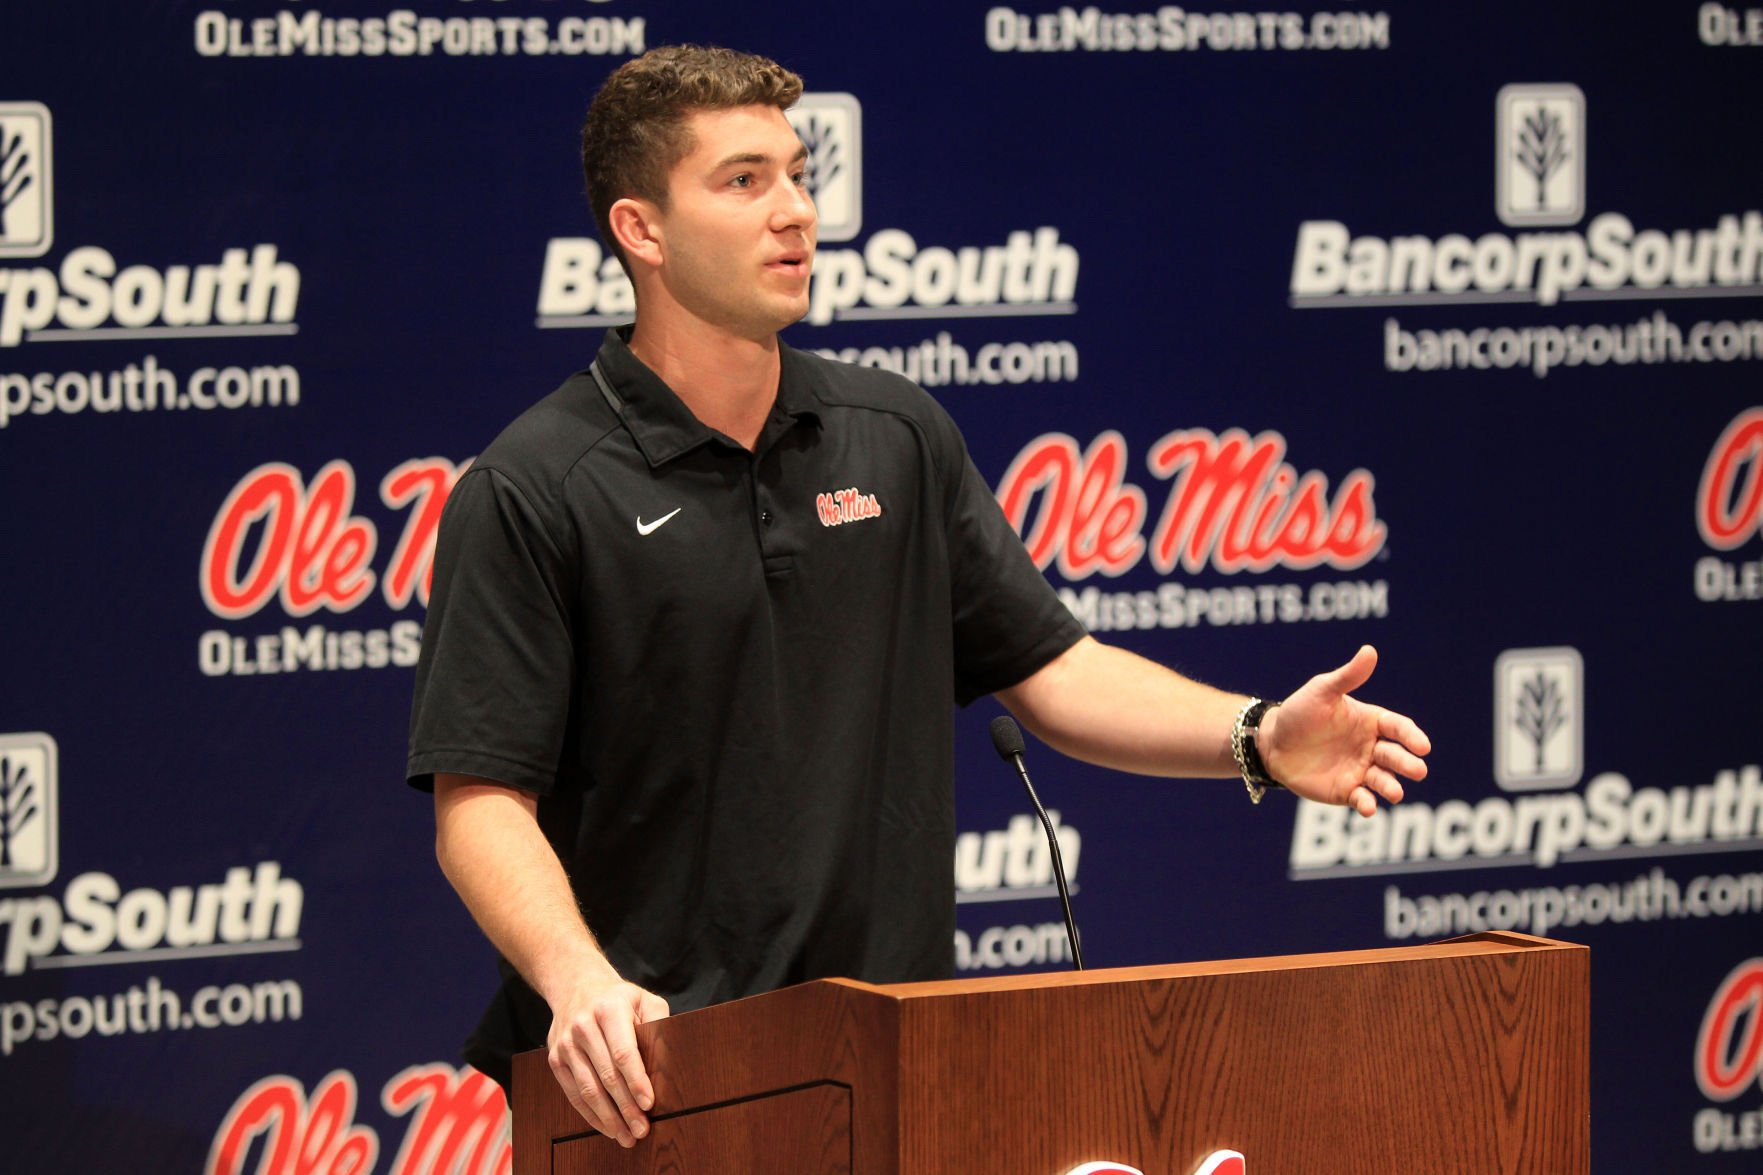 Patterson focusing on football during controversial times at Ole Miss